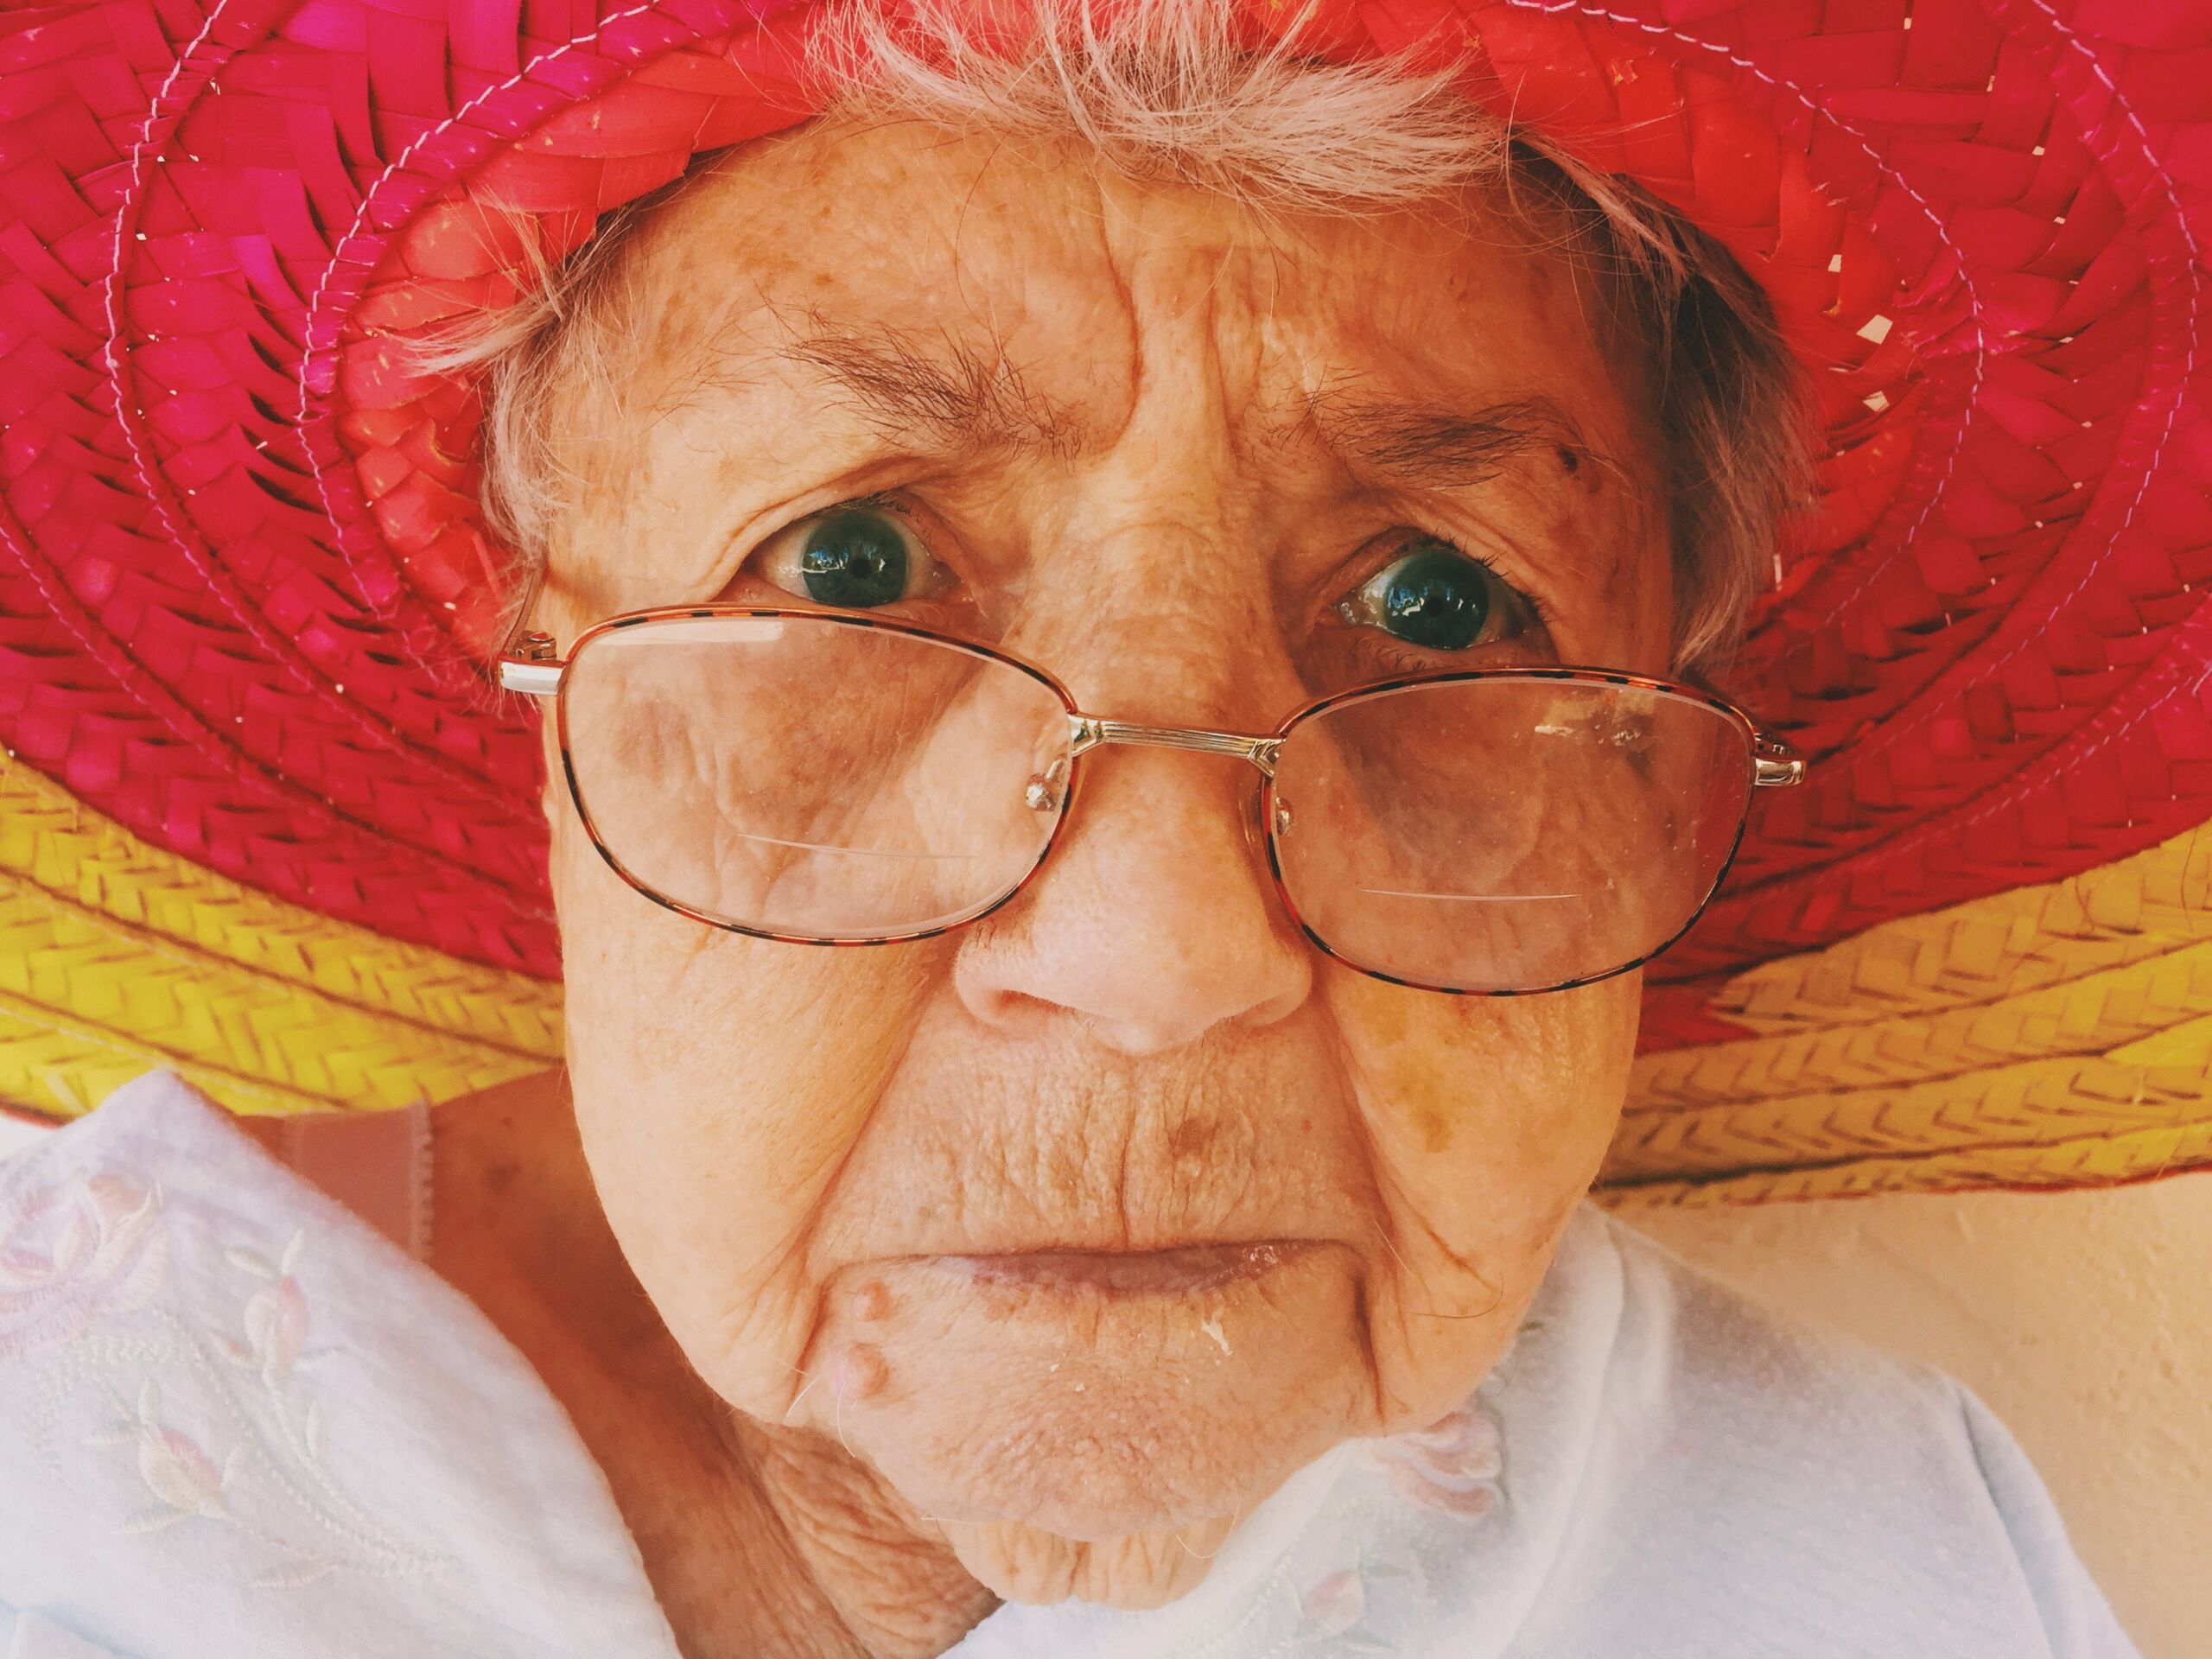 old lady with glasses looking worried nan granny